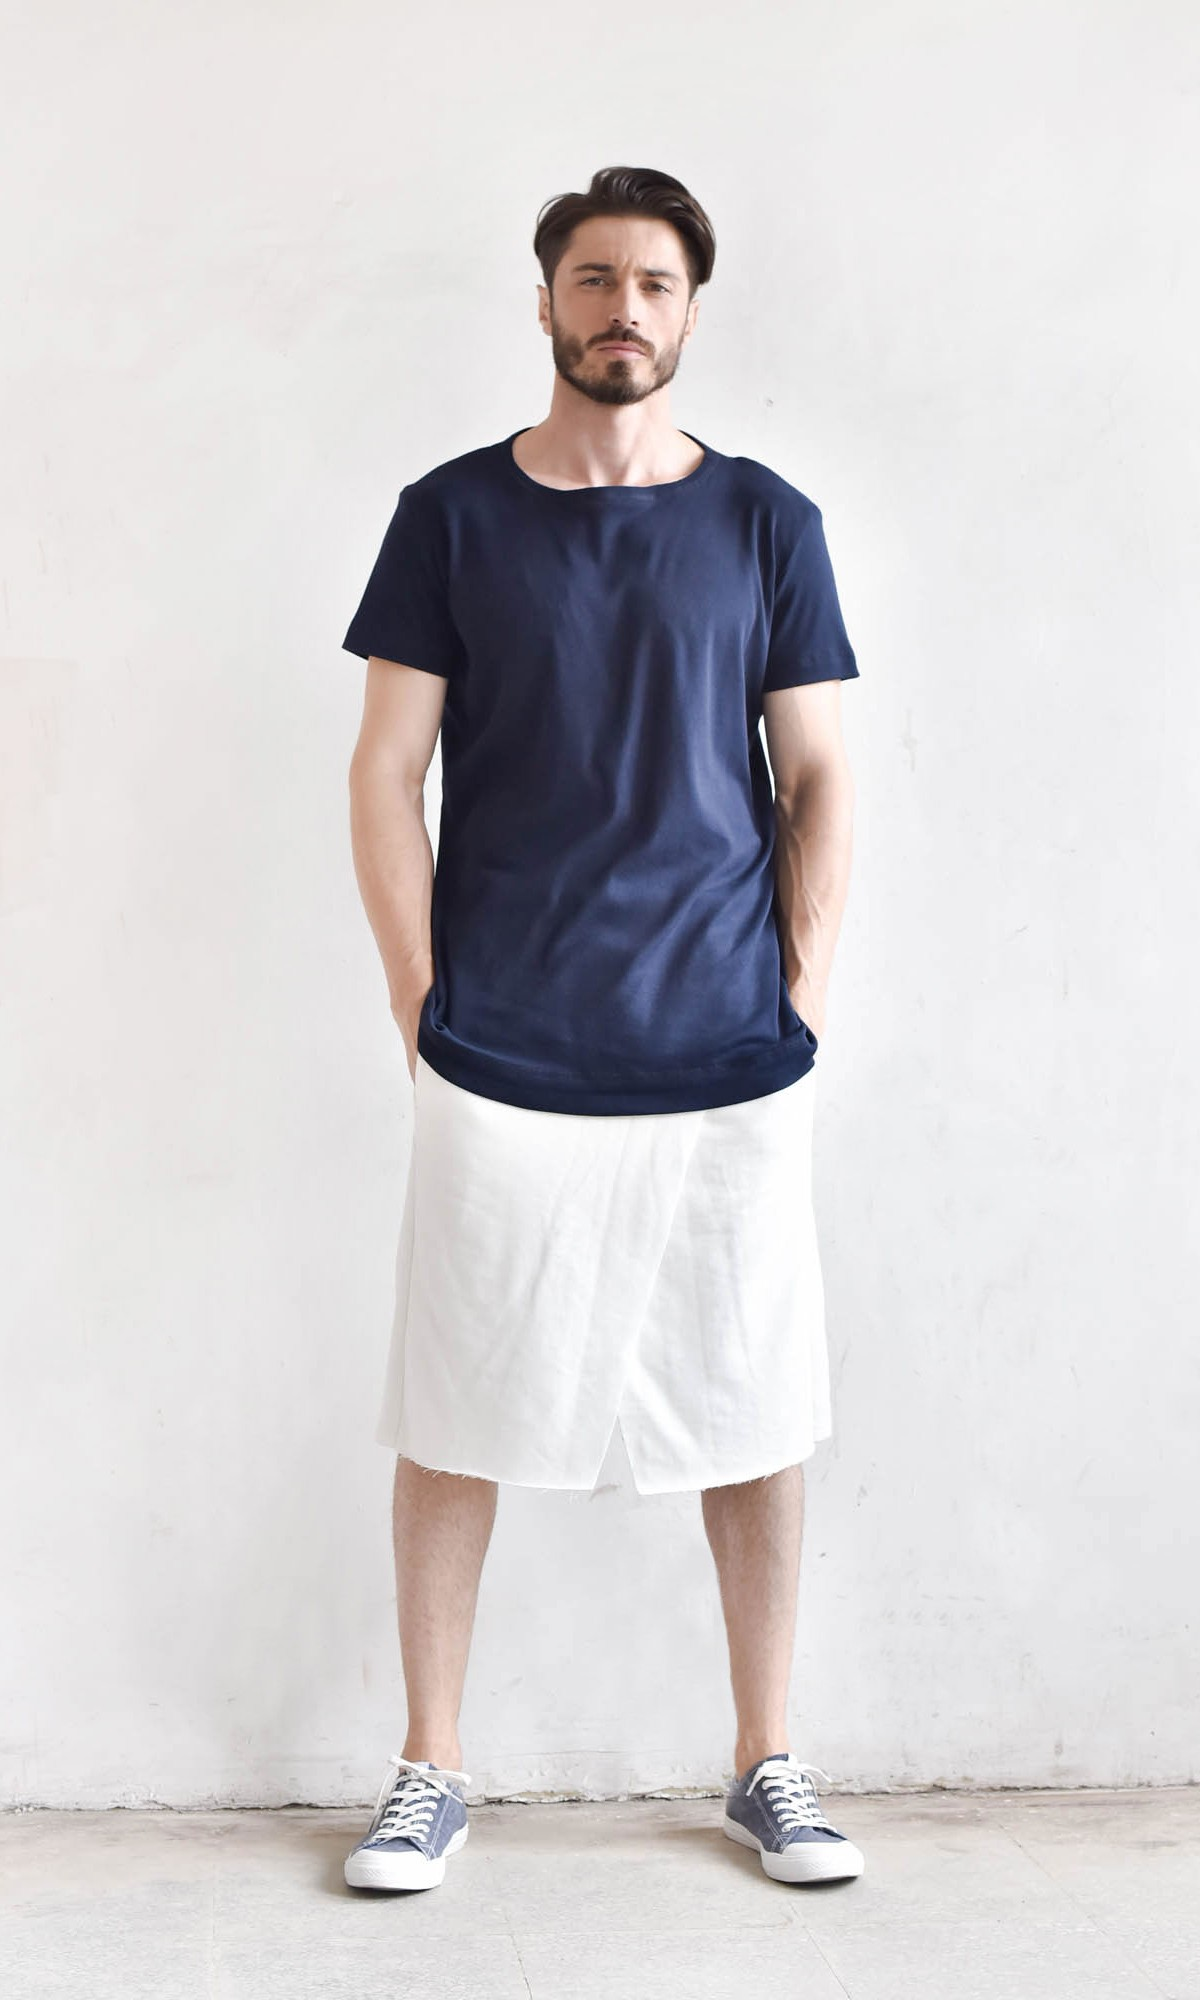 Loose Casual Drop Crotch Shorts A05134M